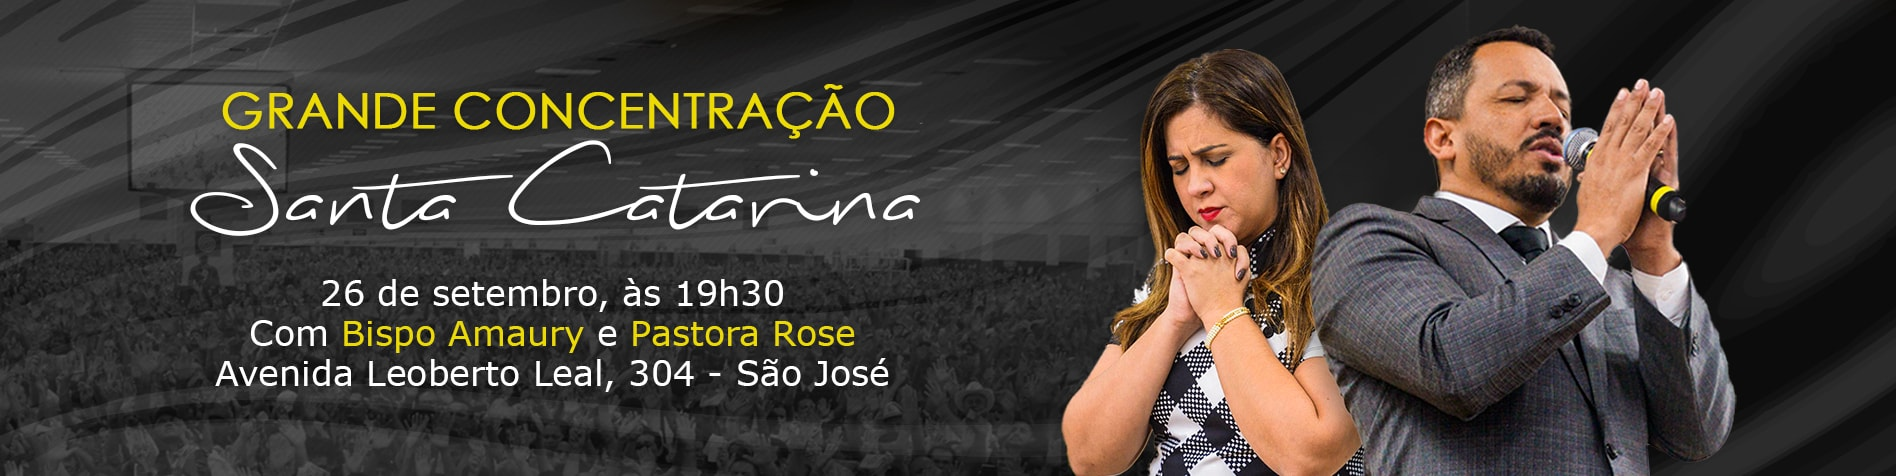 19/09 - Santa Catarina - Bp Amaury